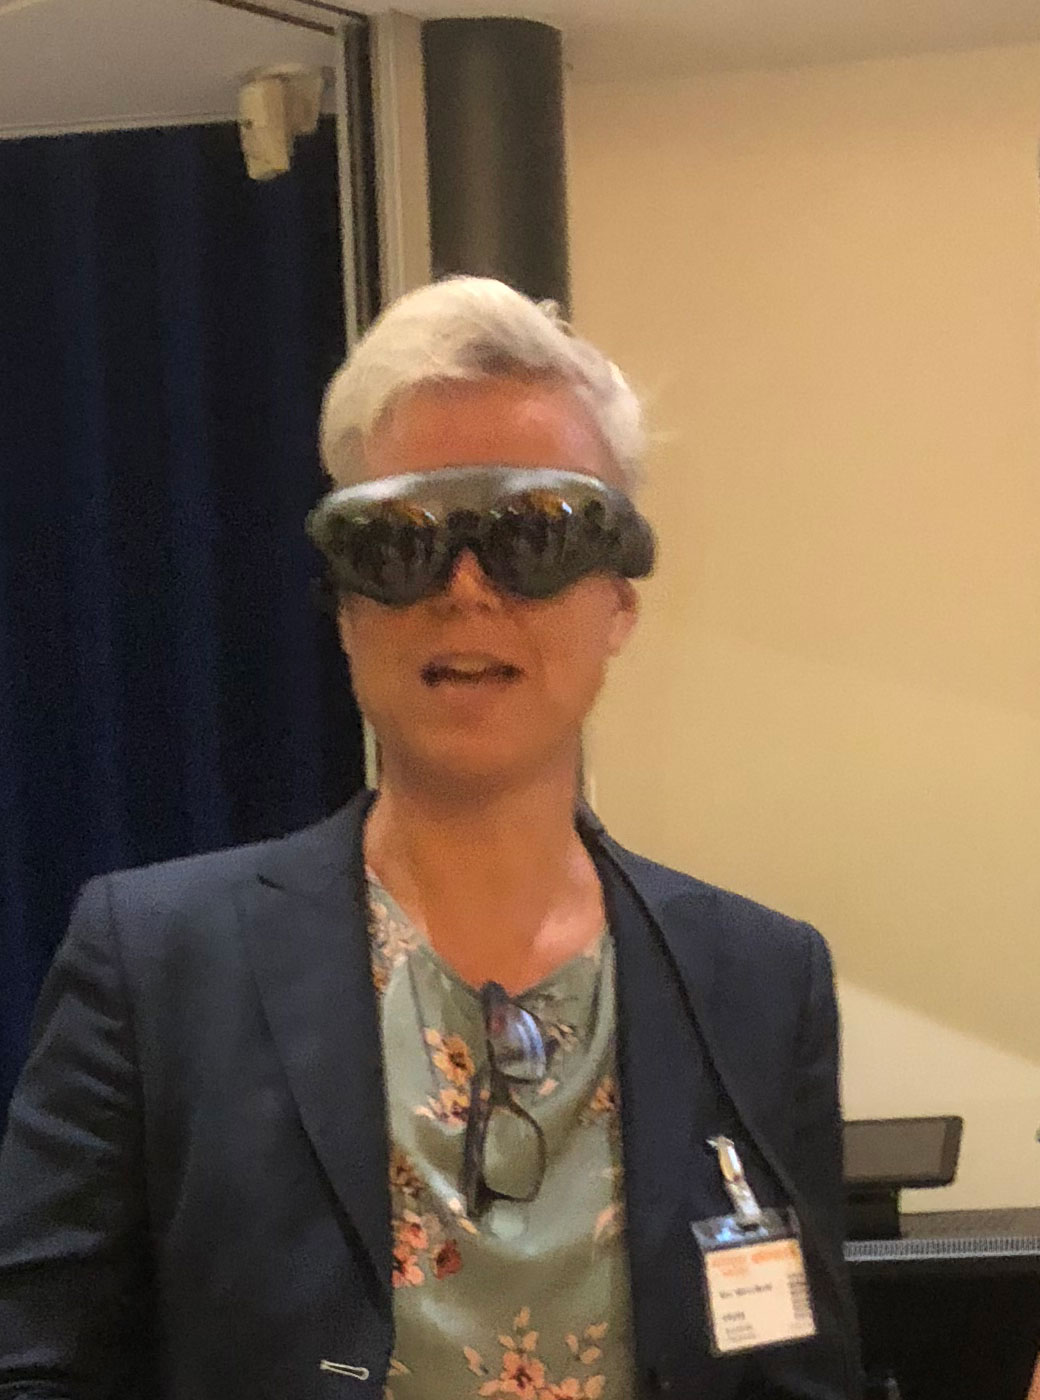 Marion magic leap bril op